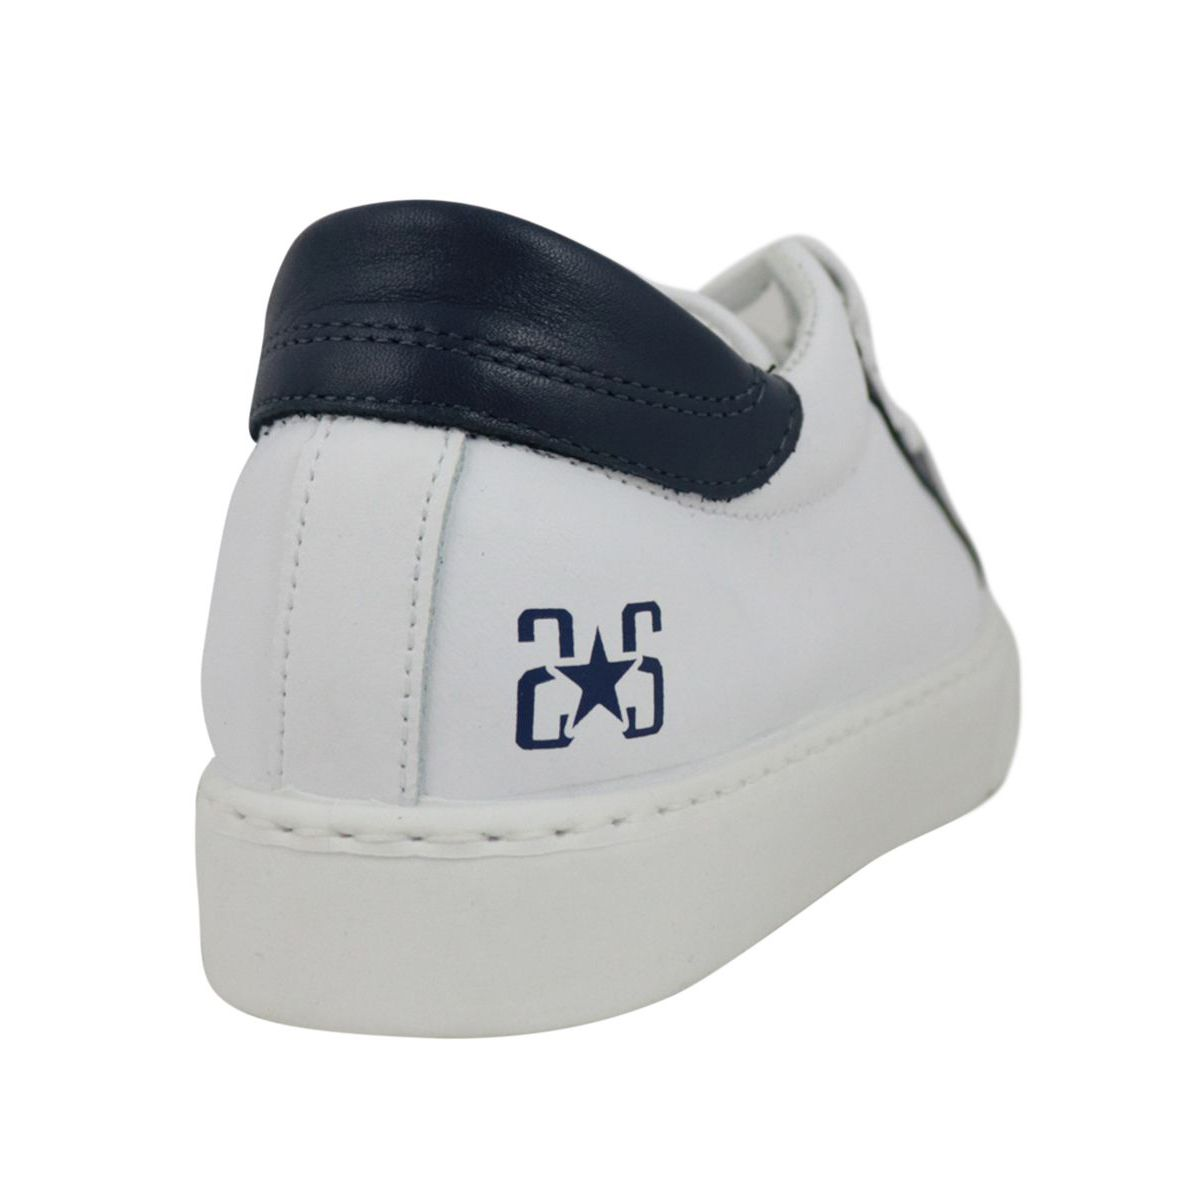 Two-tone leather sneakers with logo White / blue 2Star